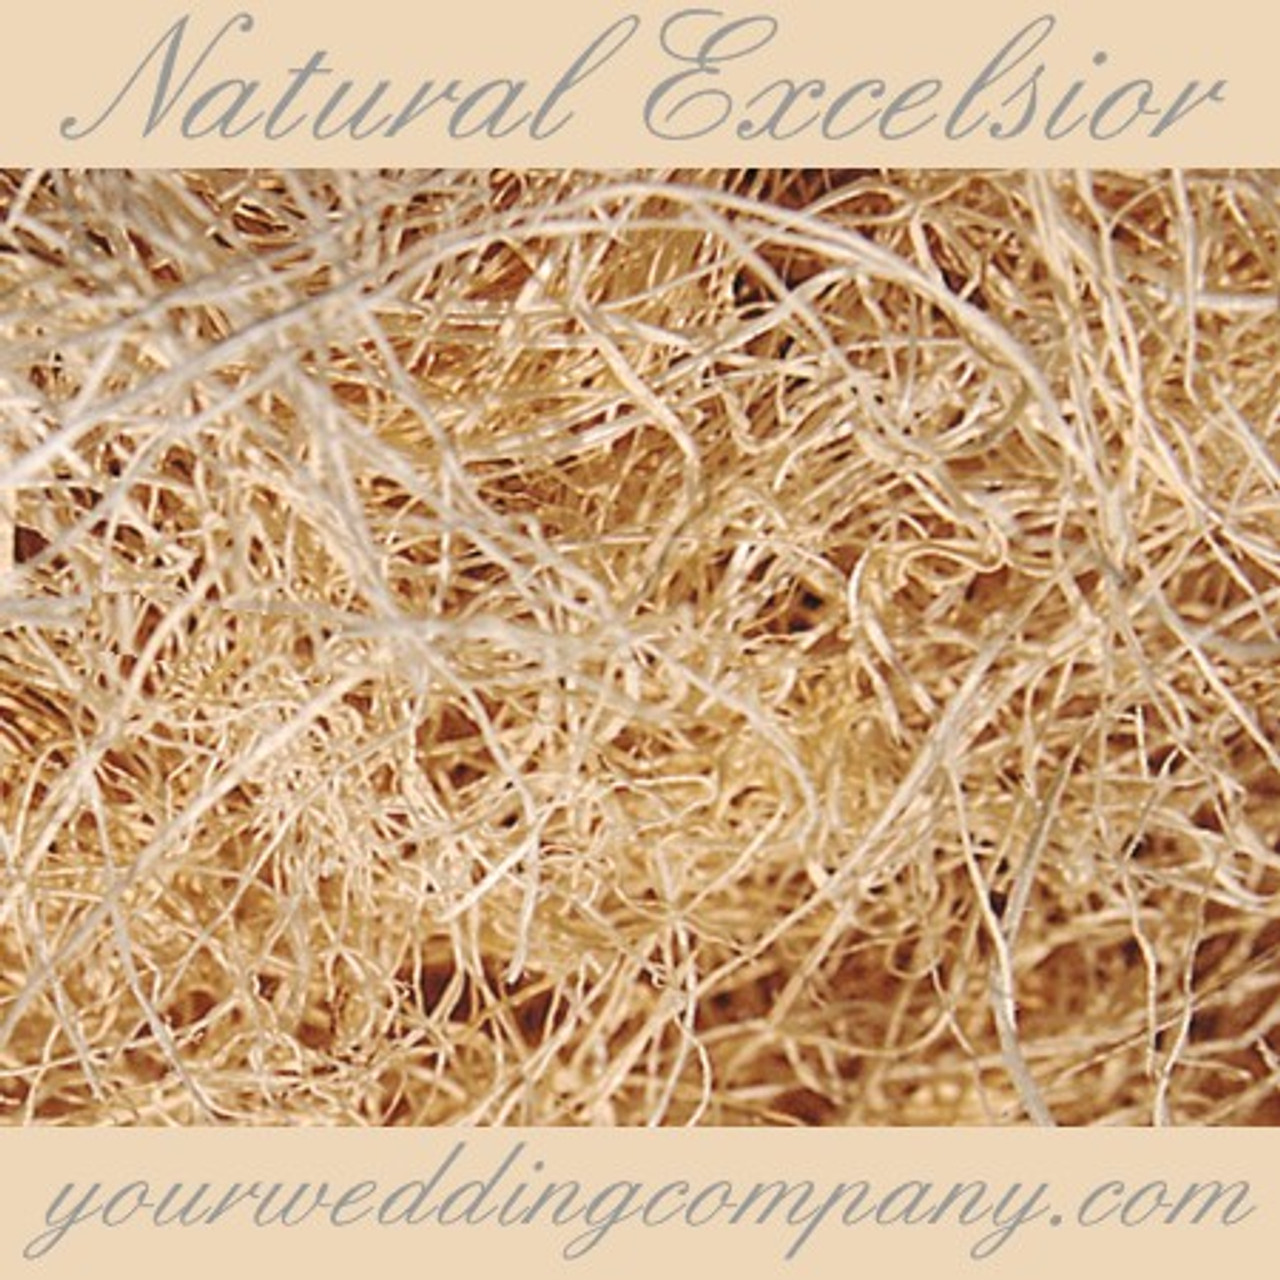 12 Oz Biodegradable Natural Excelsior Moss Floral Arranging and More Package For Crafts